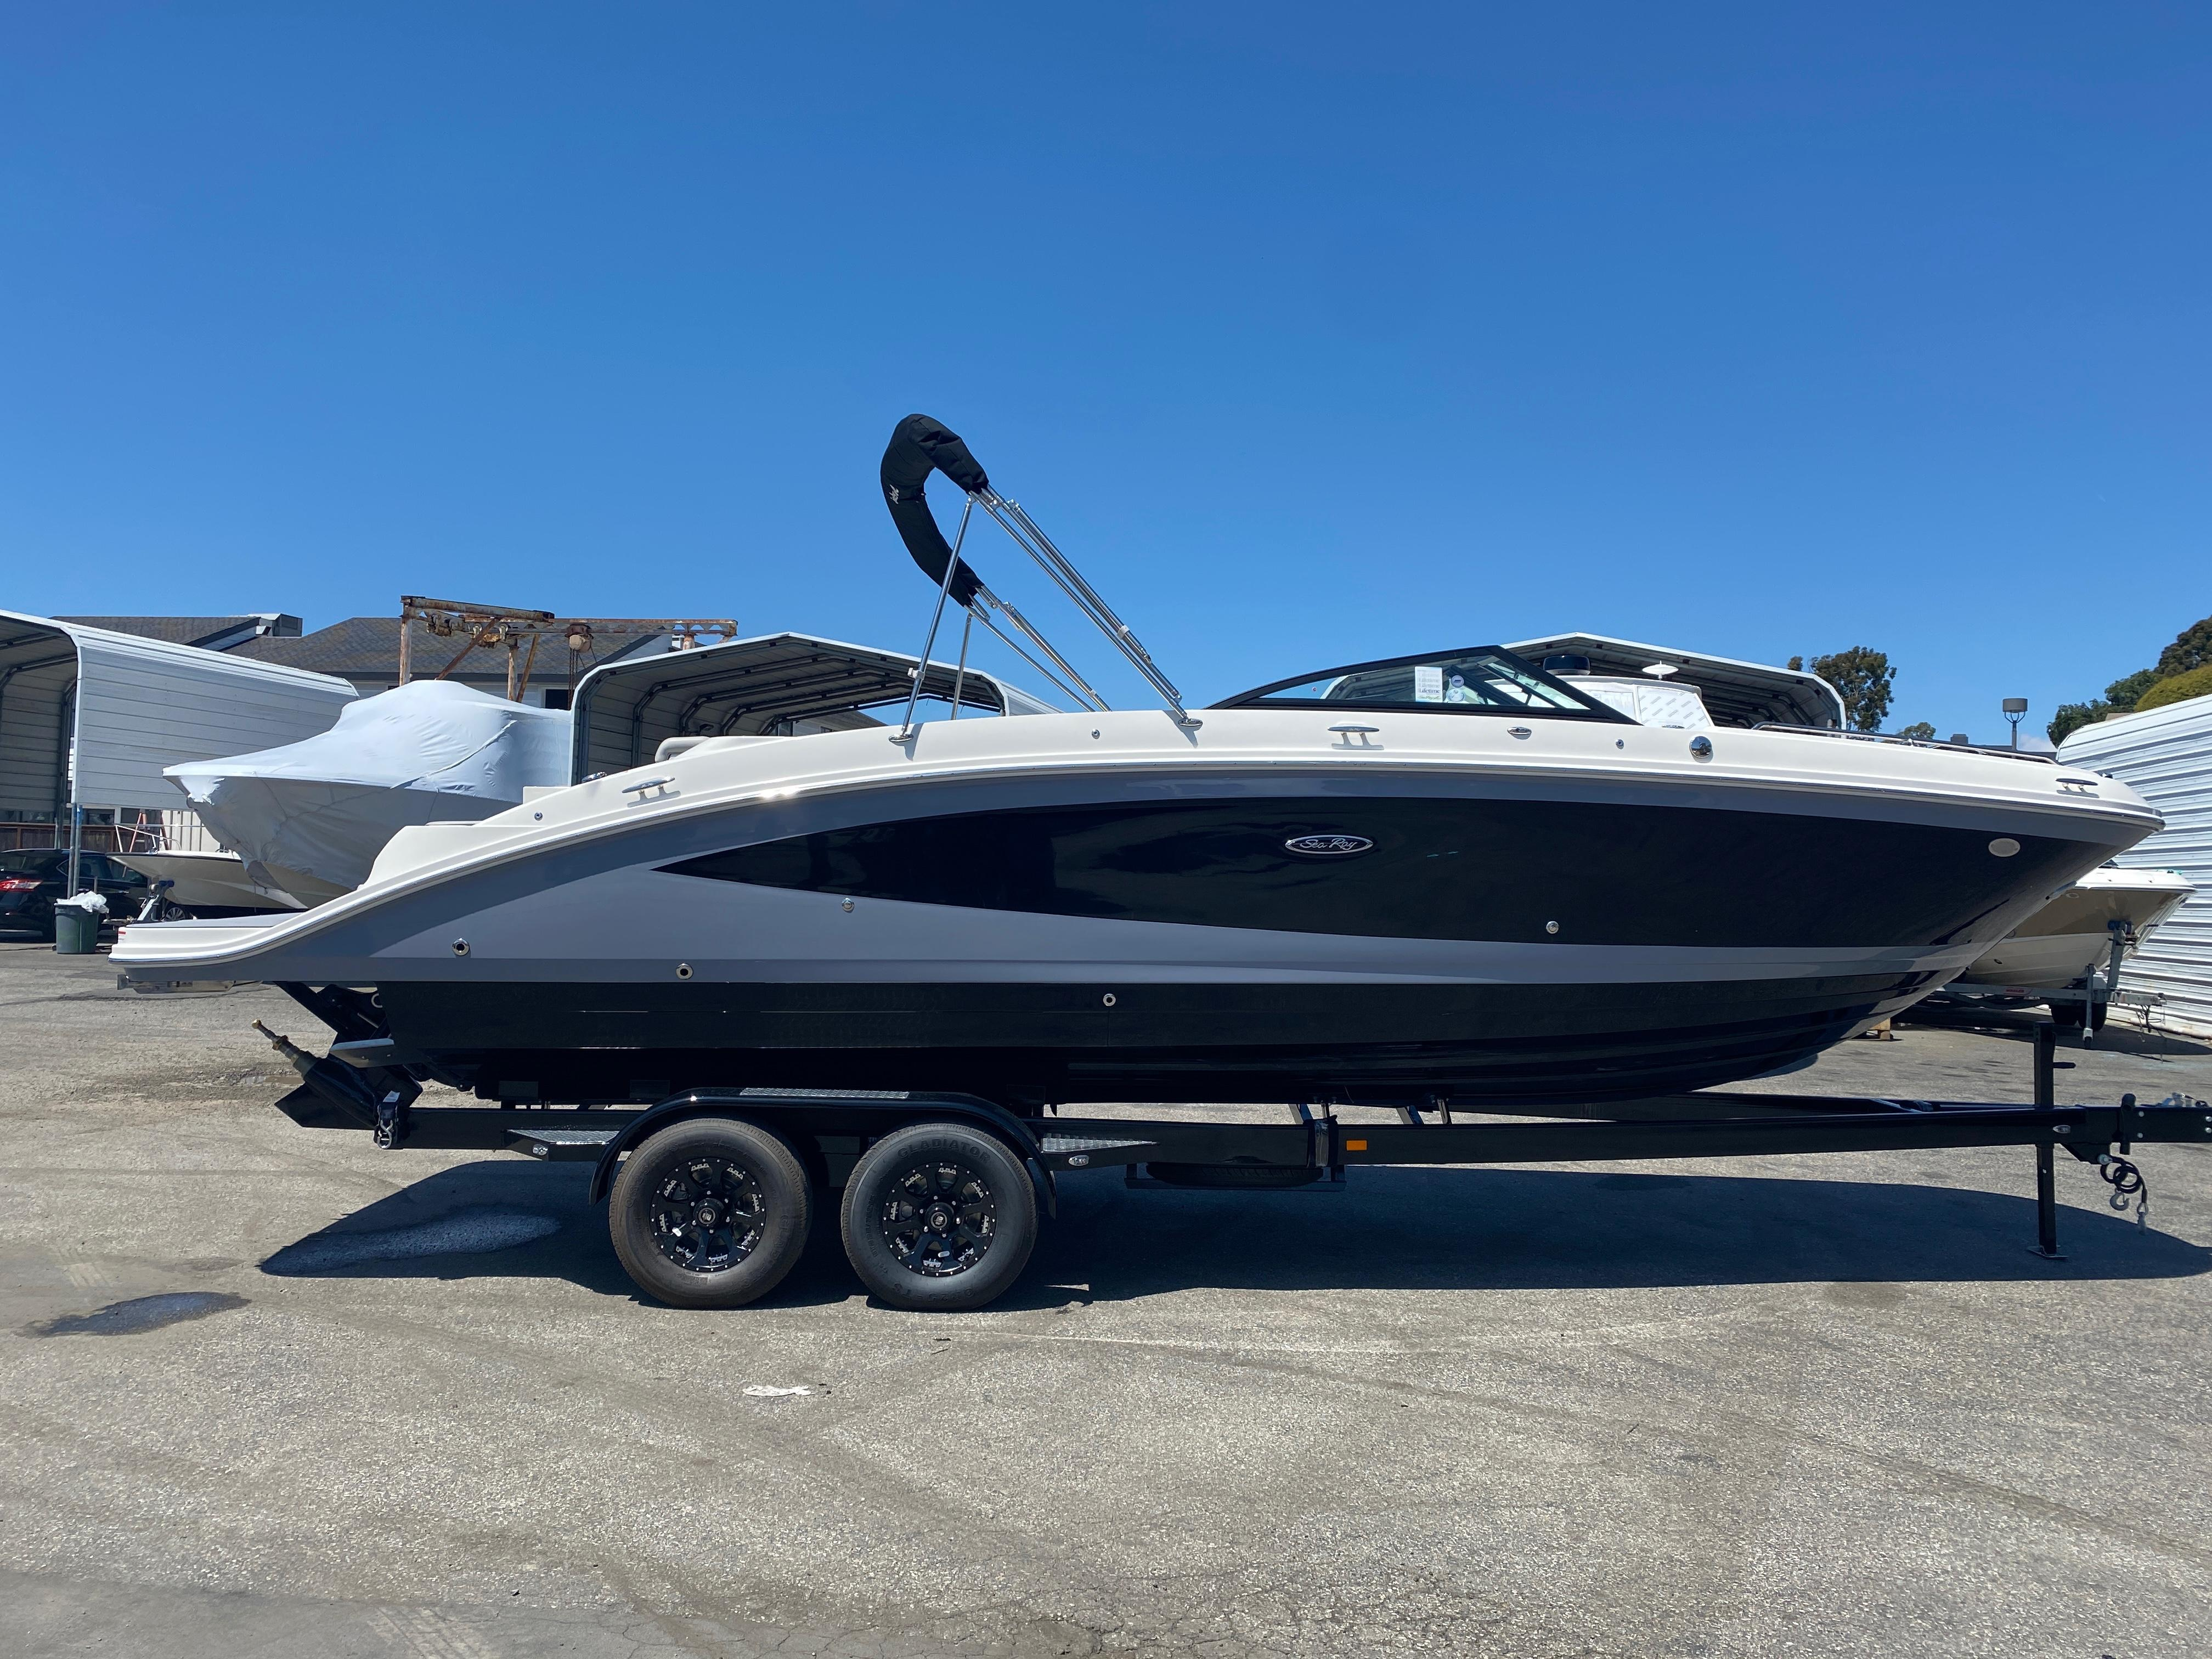 2020 Sea Ray SDX 270 #S1824A inventory image at Sun Country Coastal in Newport Beach